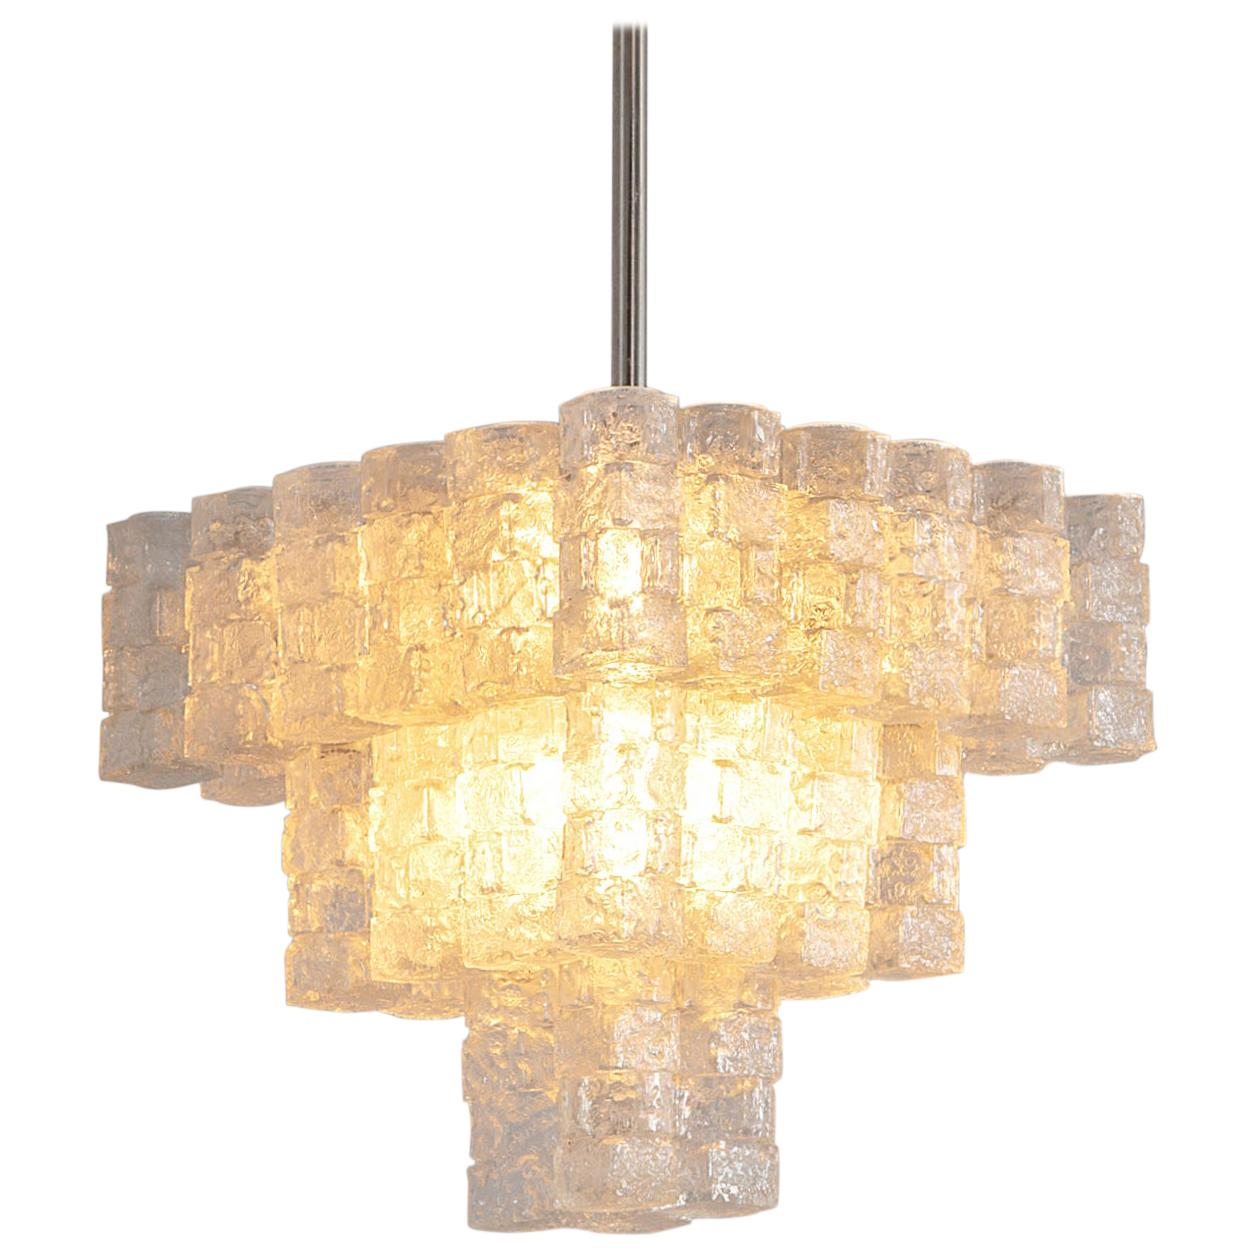 Large Chandelier with Frosted Glass Cubes